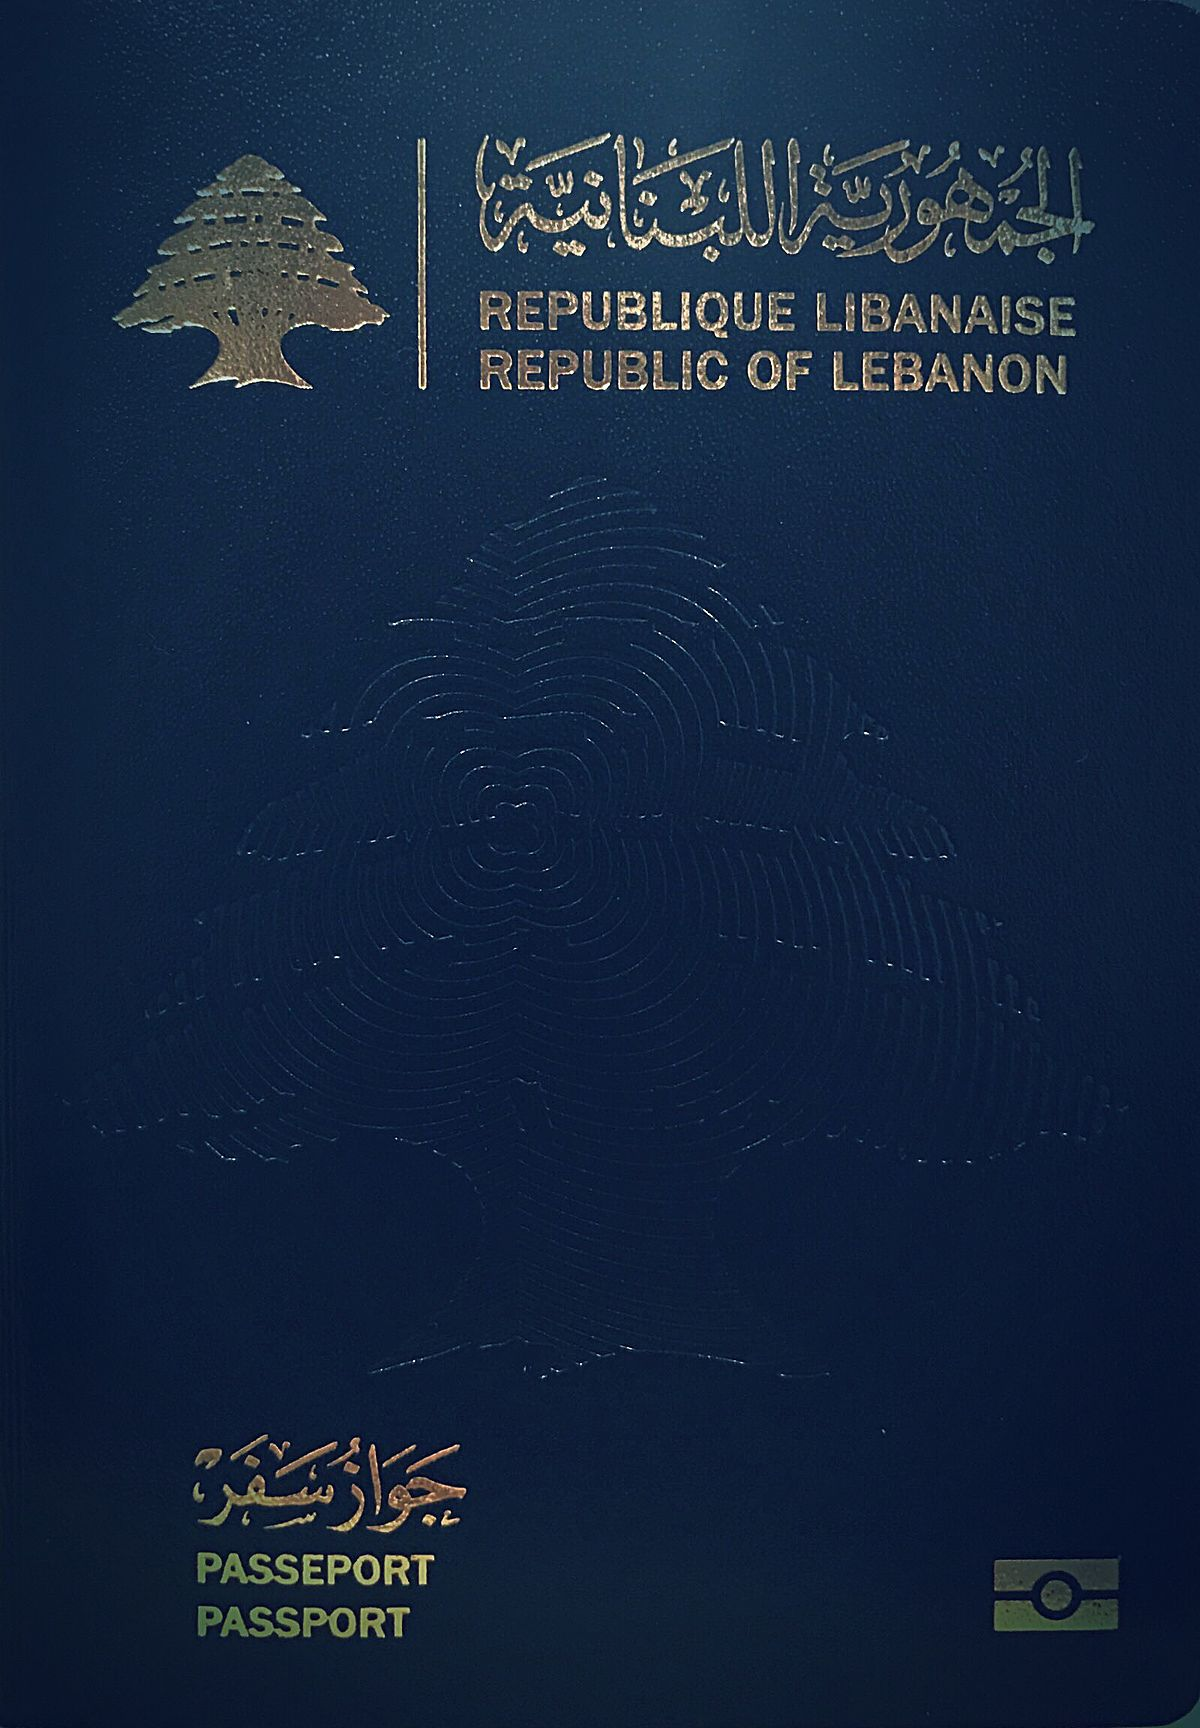 visa requirements for lebanese citizens